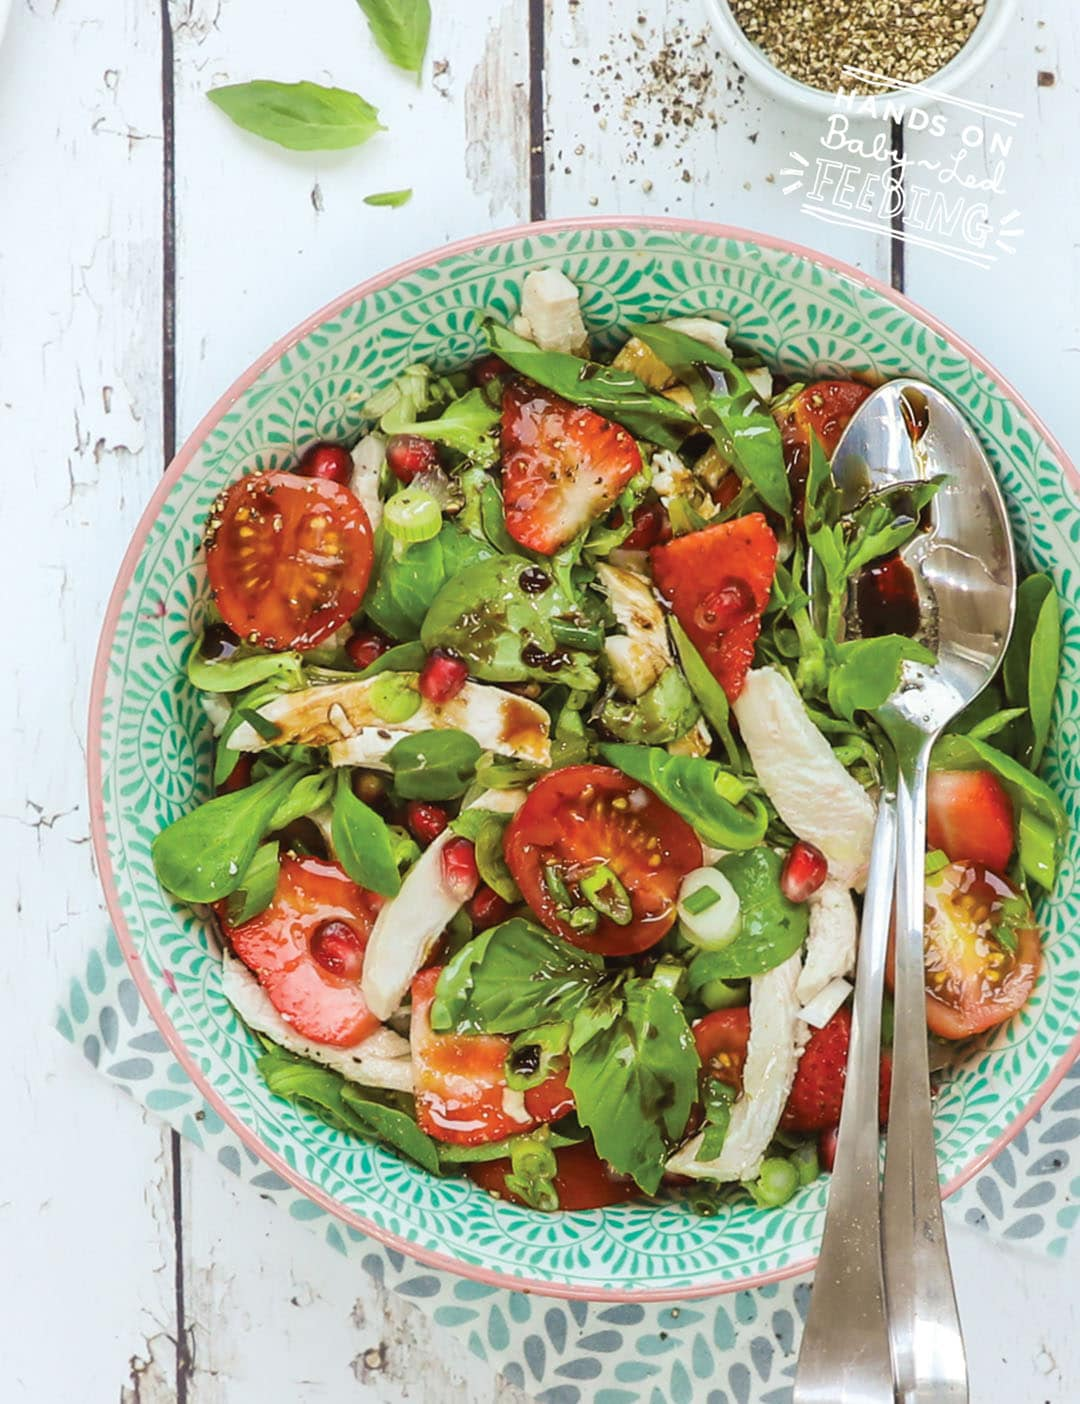 Chicken, Pomegrante and Strawberry Salad Recipe Images